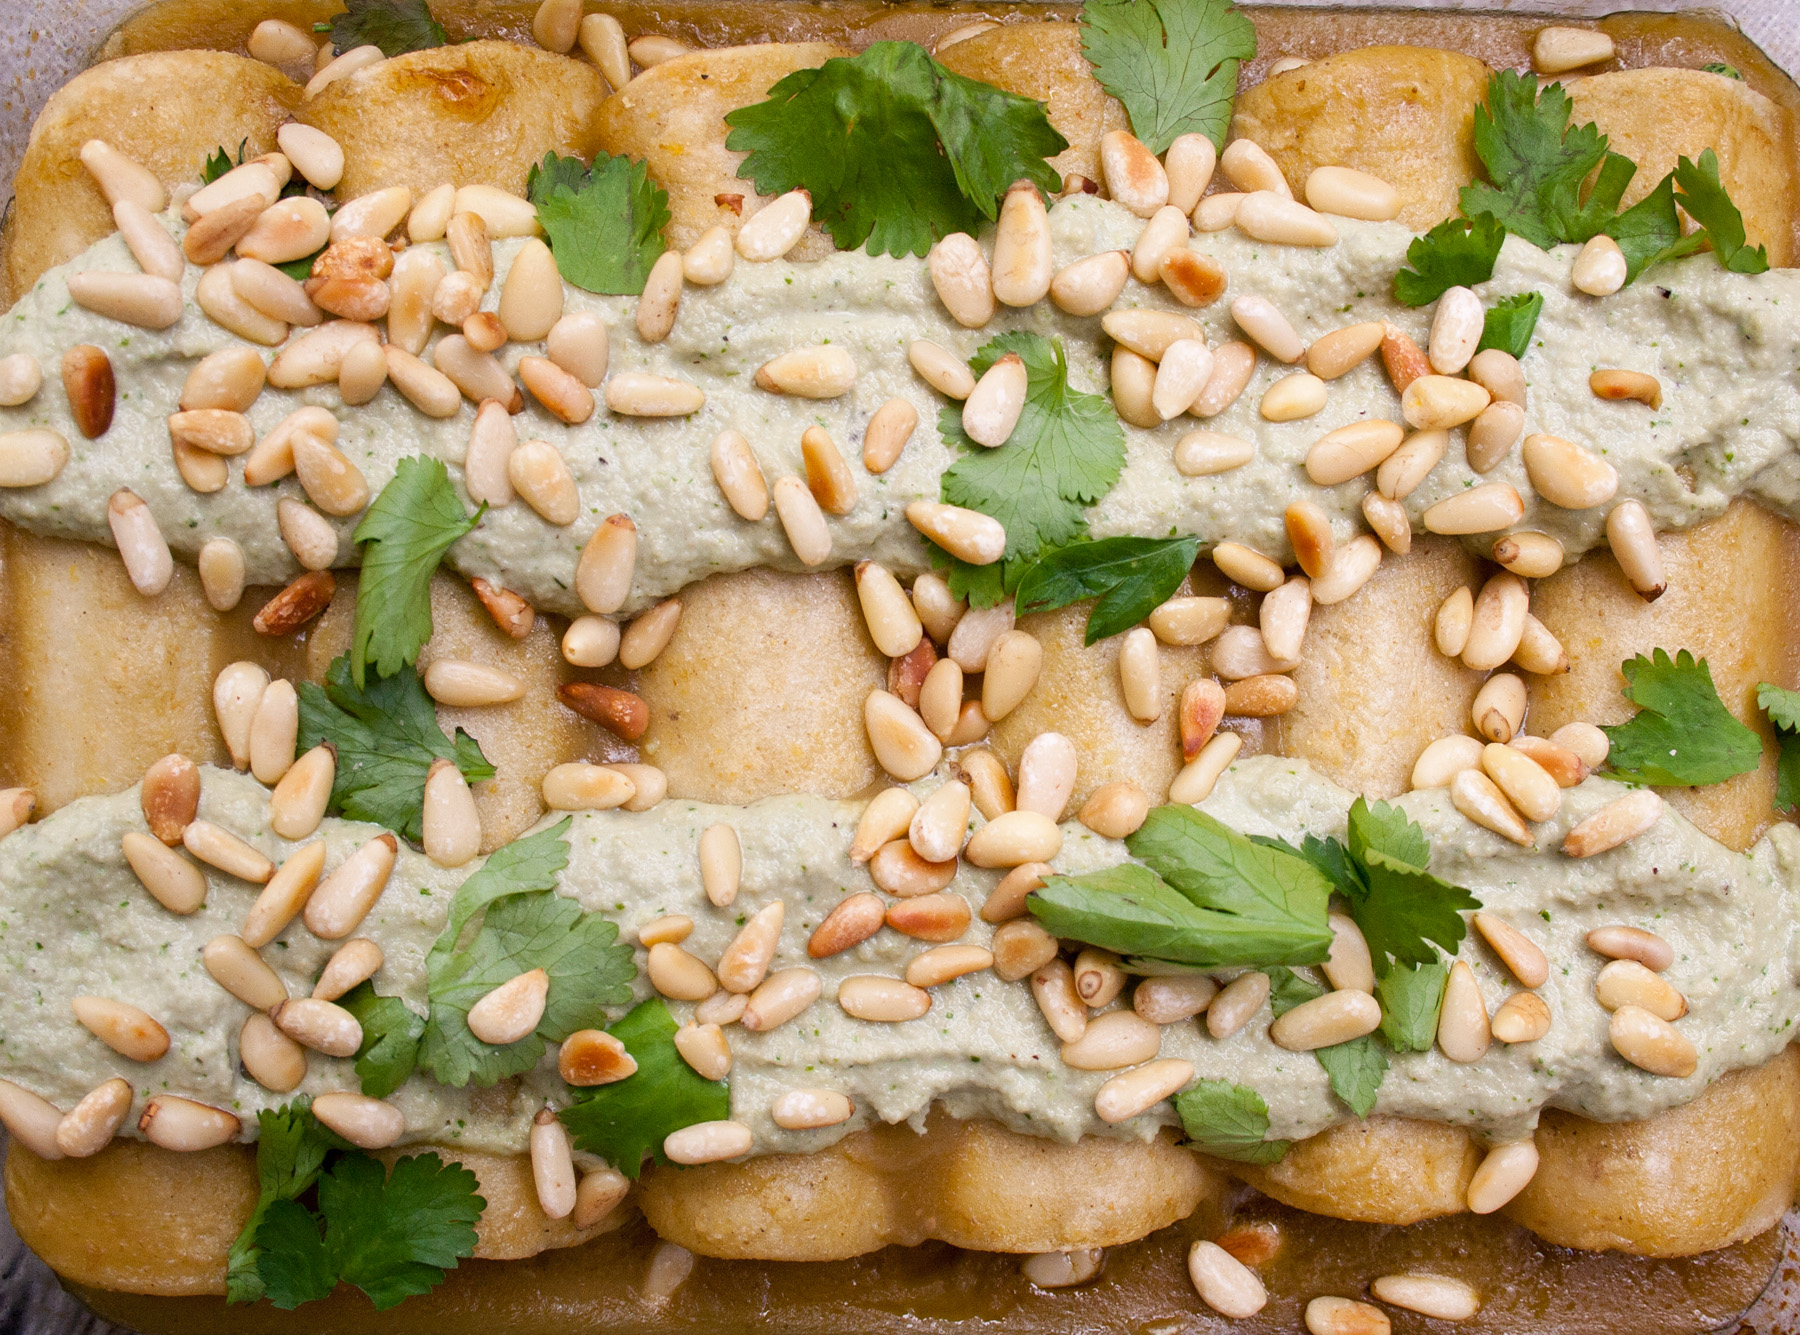 Spinach, Tofu, and Pine Nut Enchiladas birds eye view close up of enchiladas in baking dish.